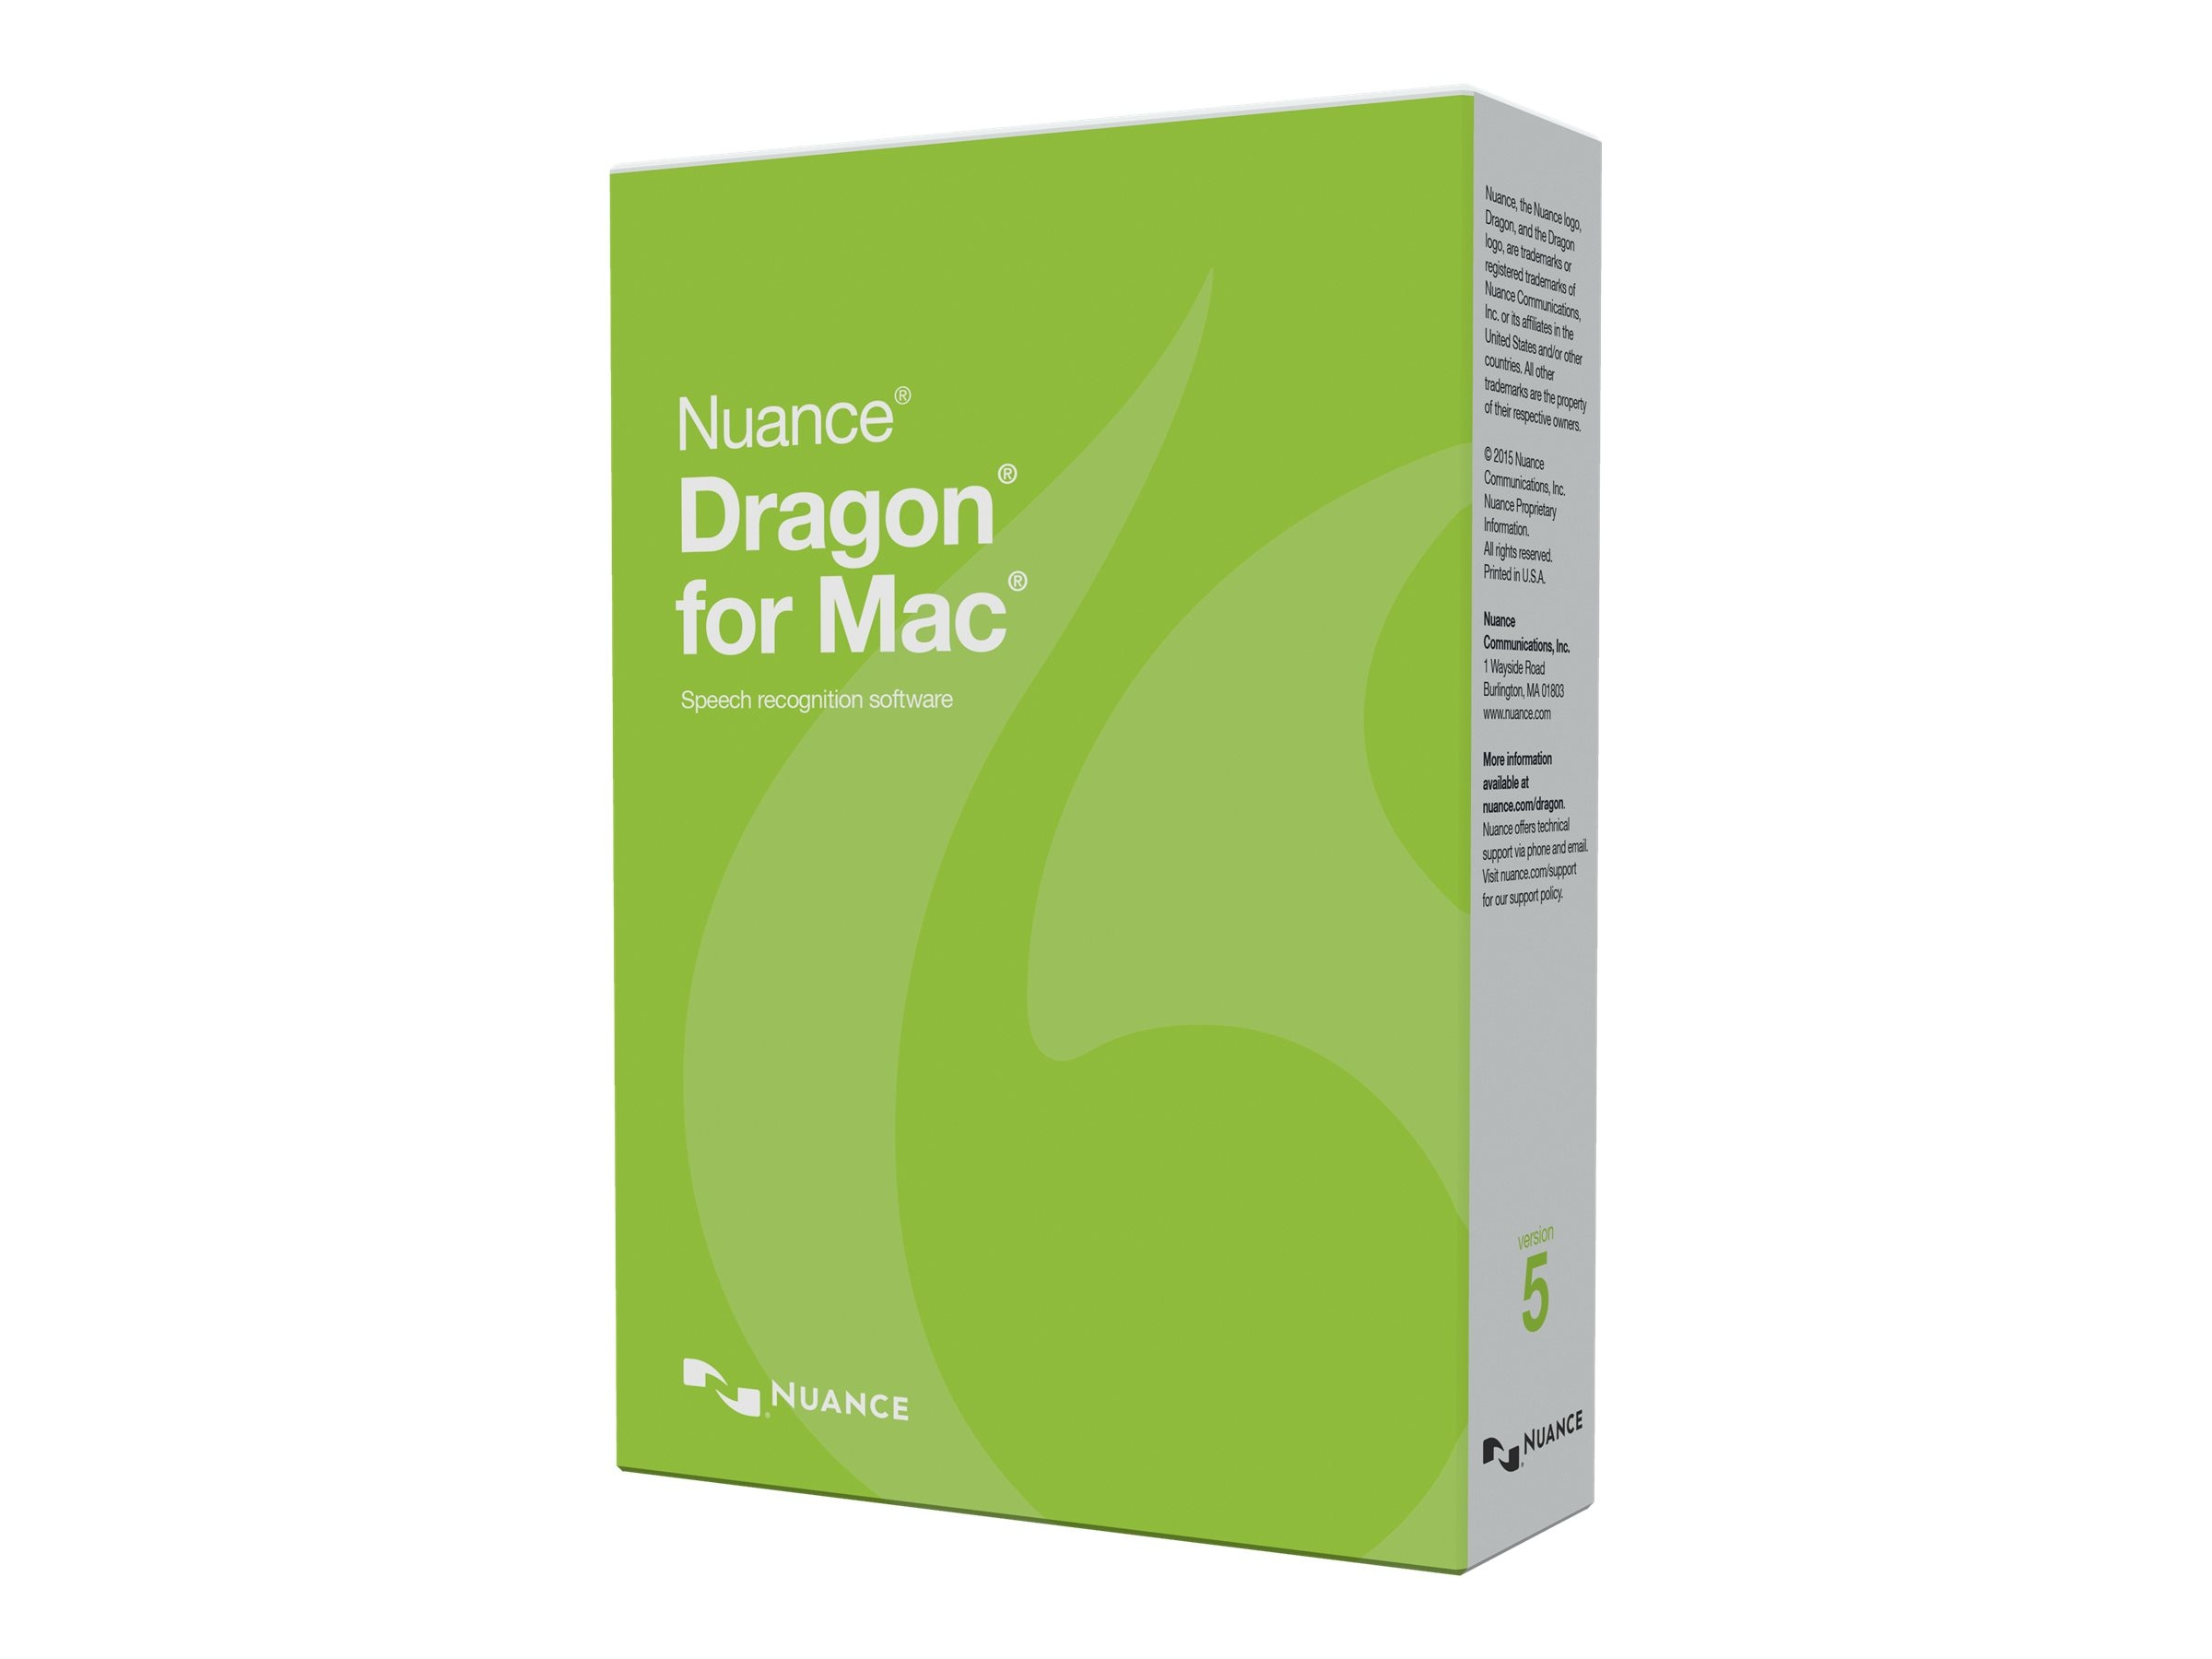 Nuance Corp. Dragon for Mac 5.0, US English, Upgrade from Dictate